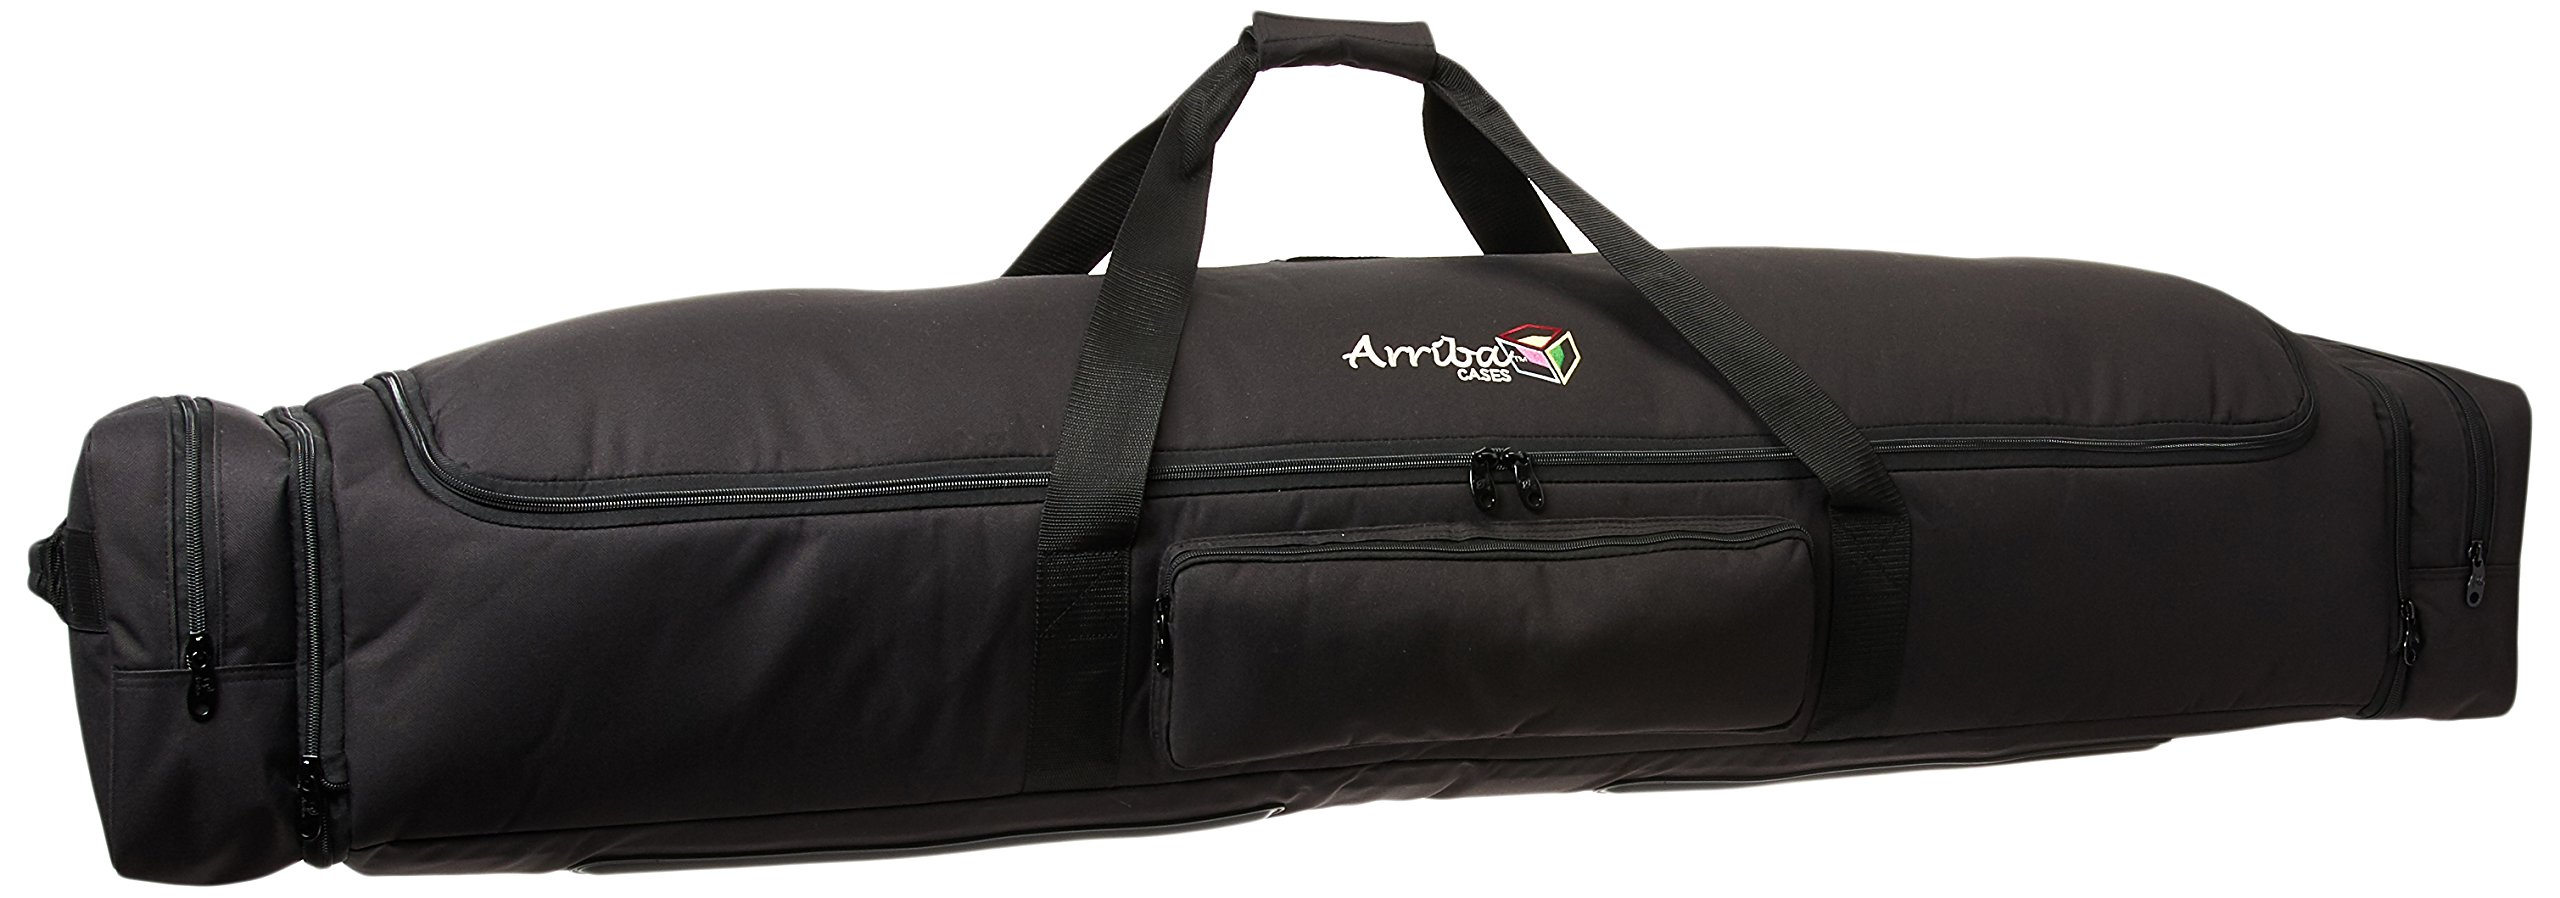 Arriba Cases Ac-150 Padded Gear Transport Bag Dimensions 54X13.25X9 Inches